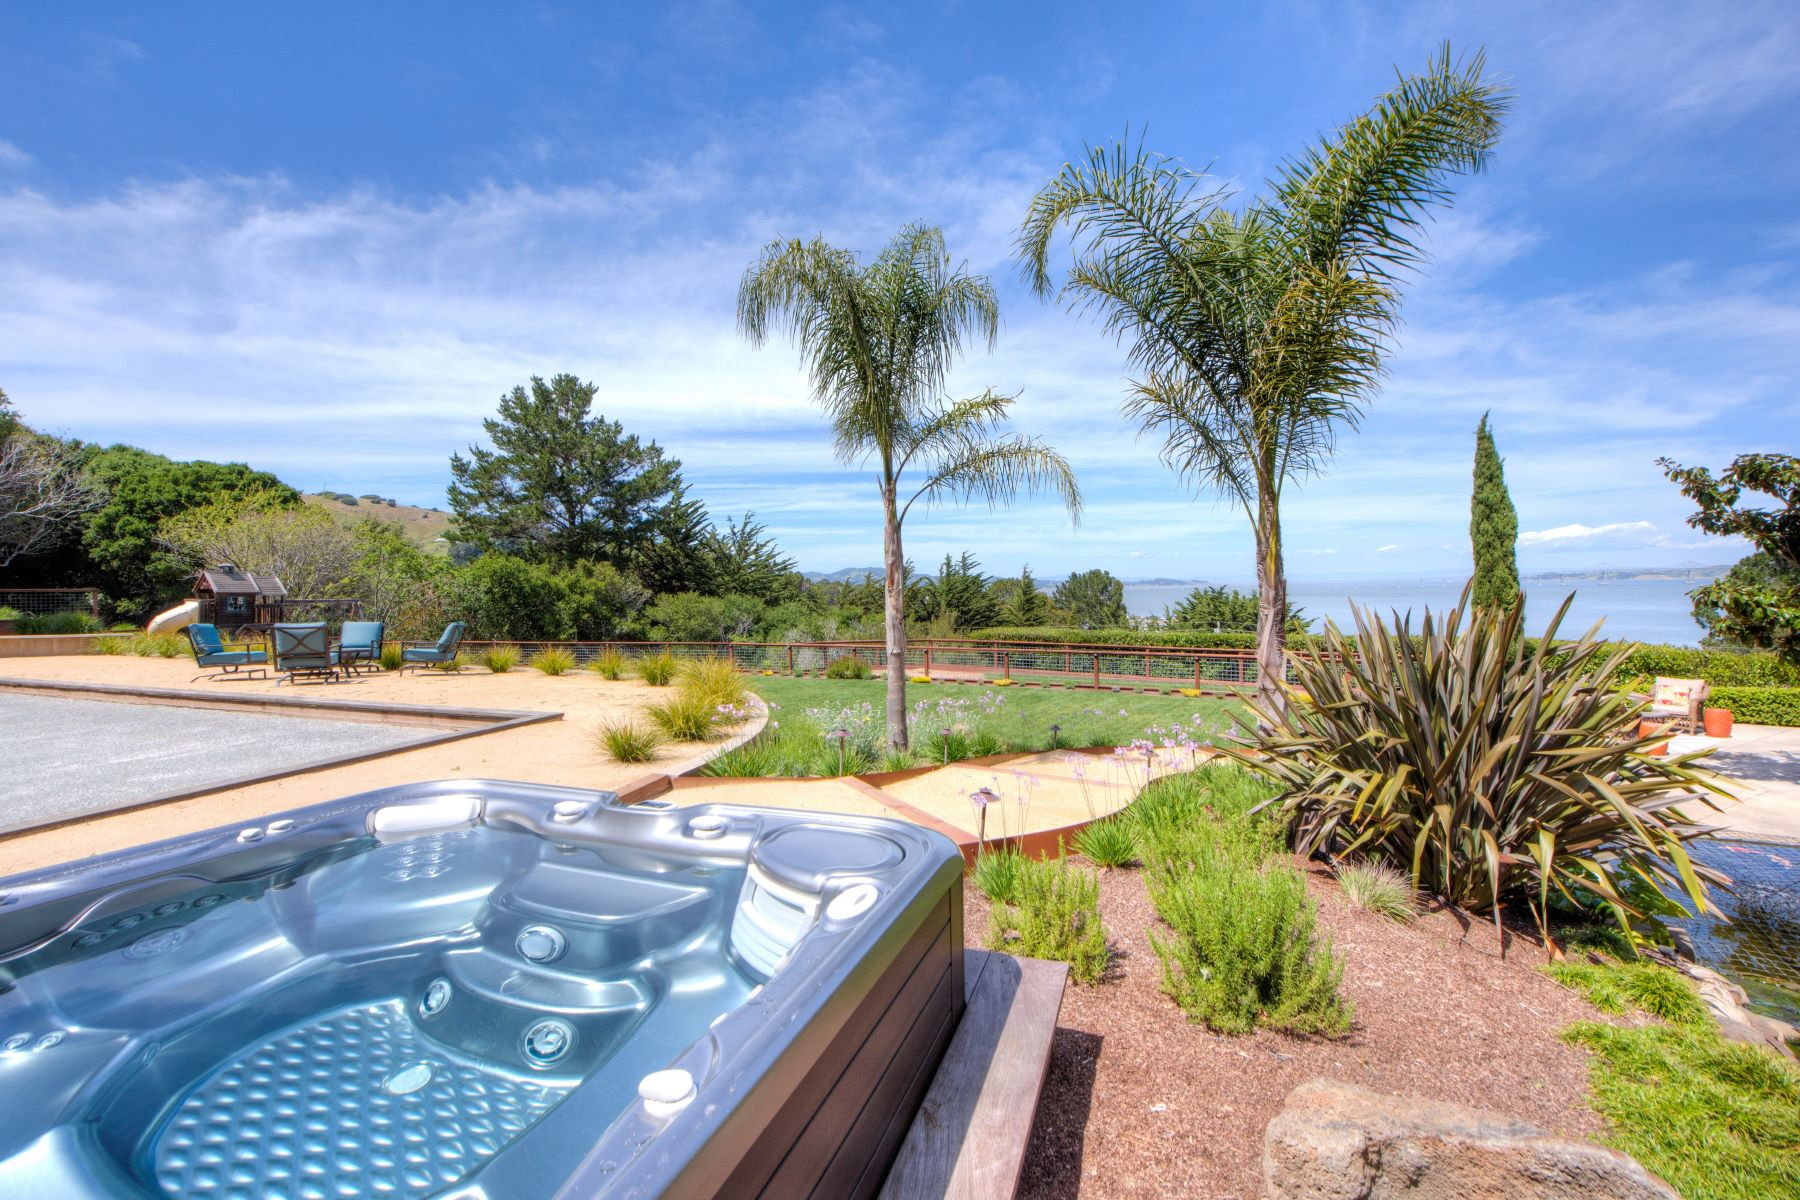 Additional photo for property listing at Stunning Private Villa in Tiburon! 4185 Paradise Dr Tiburon, California 94920 United States